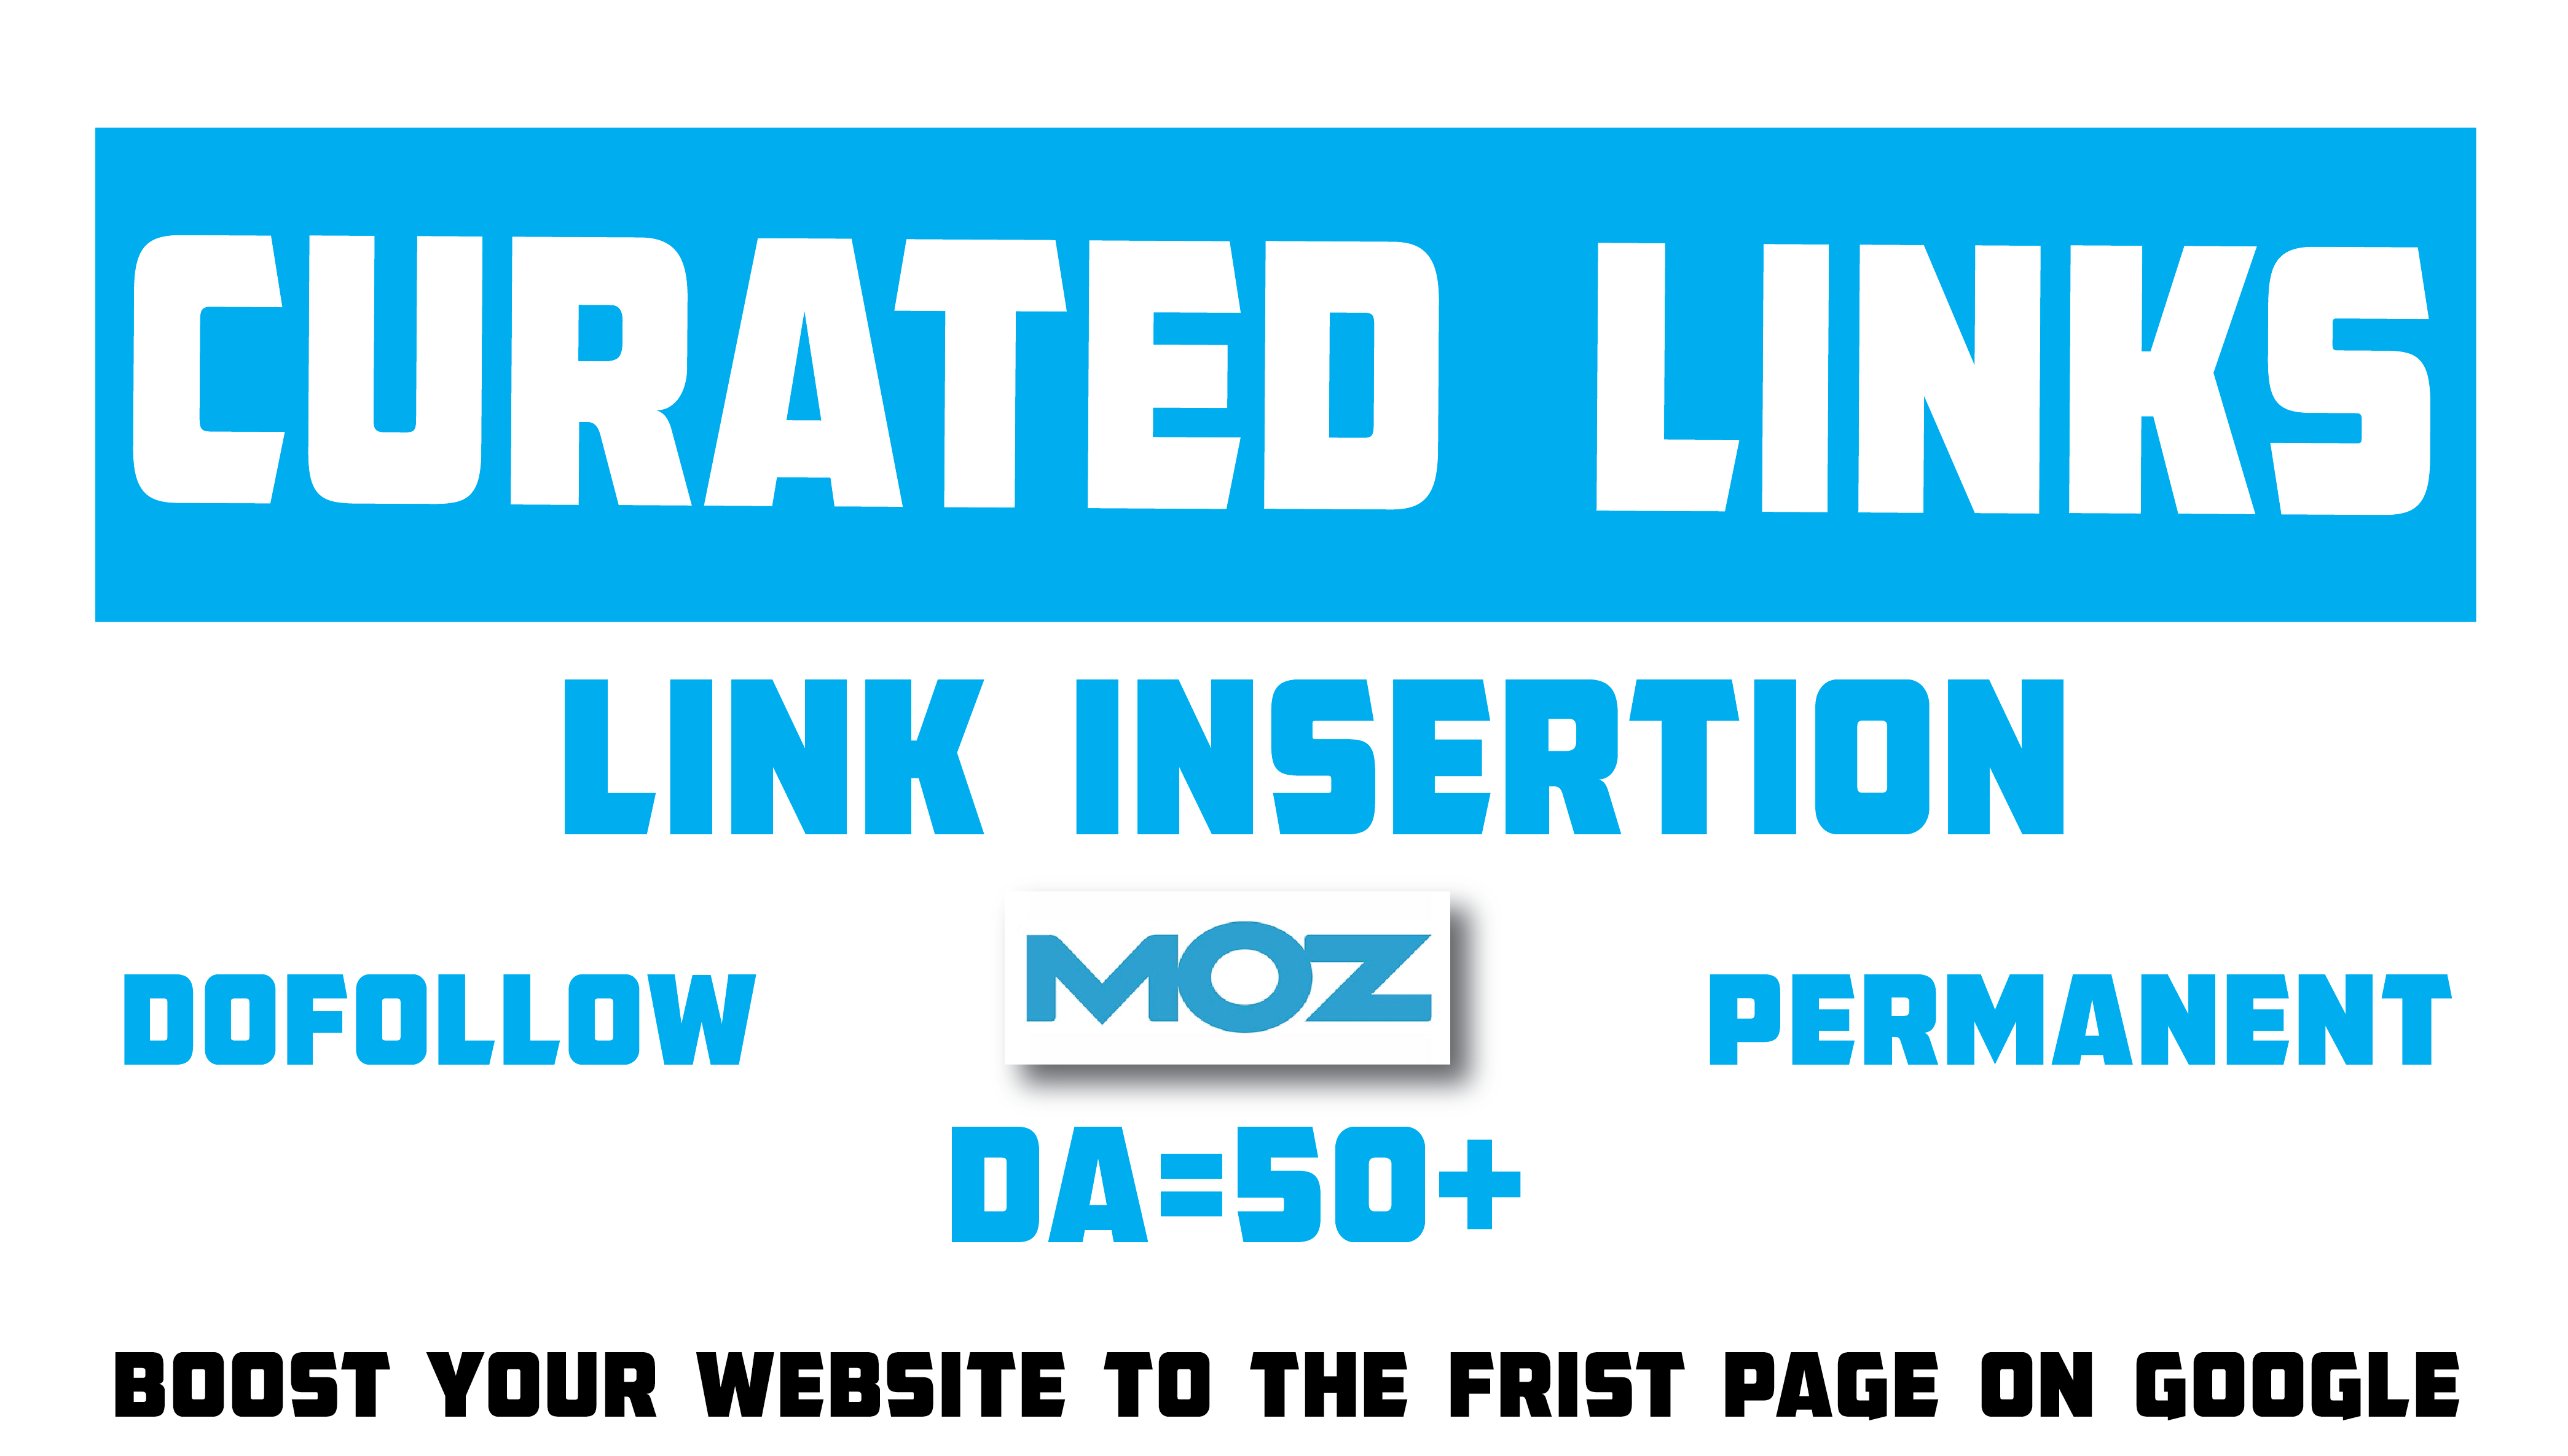 I will do Curated links or Link Insertion Backlinks